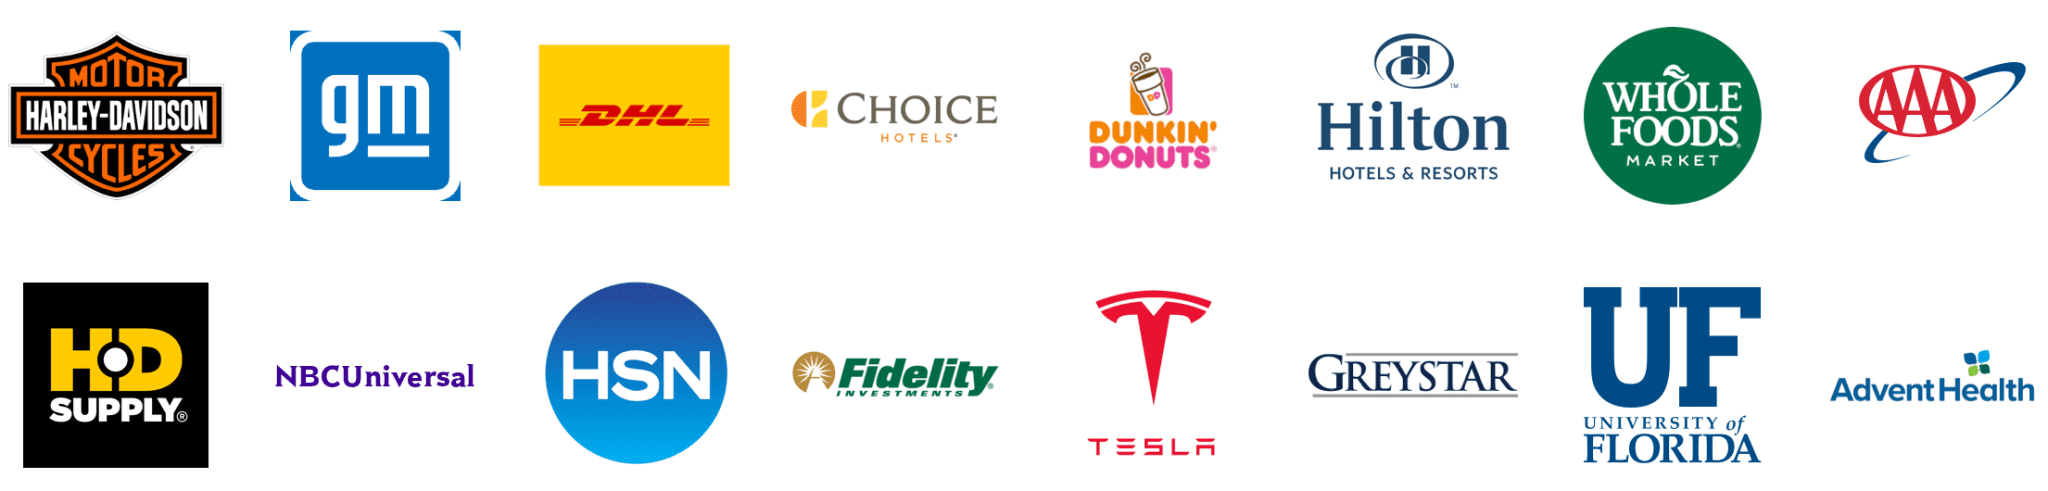 NovaCHARGE-EVSE-Electric-Vehicle-EV-Charging-Home Page-Top-Logos